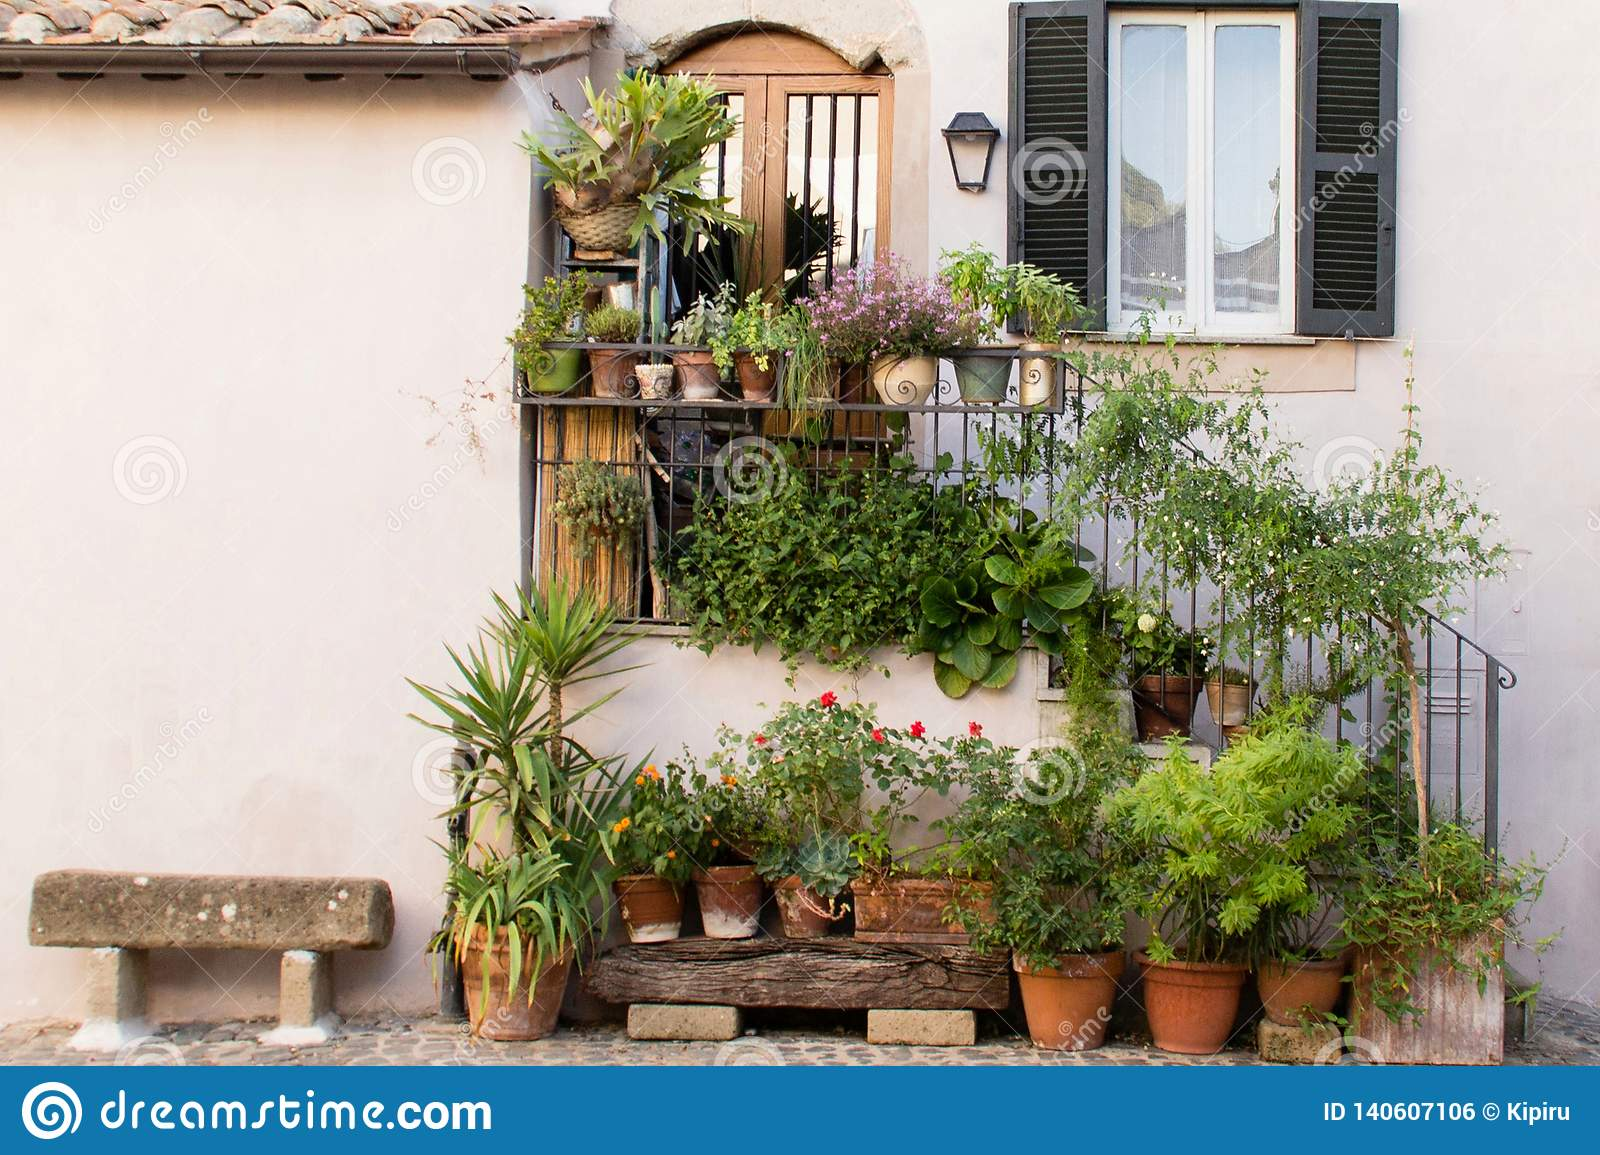 Colorful Plants And Flowers Outside A House Stock Photo